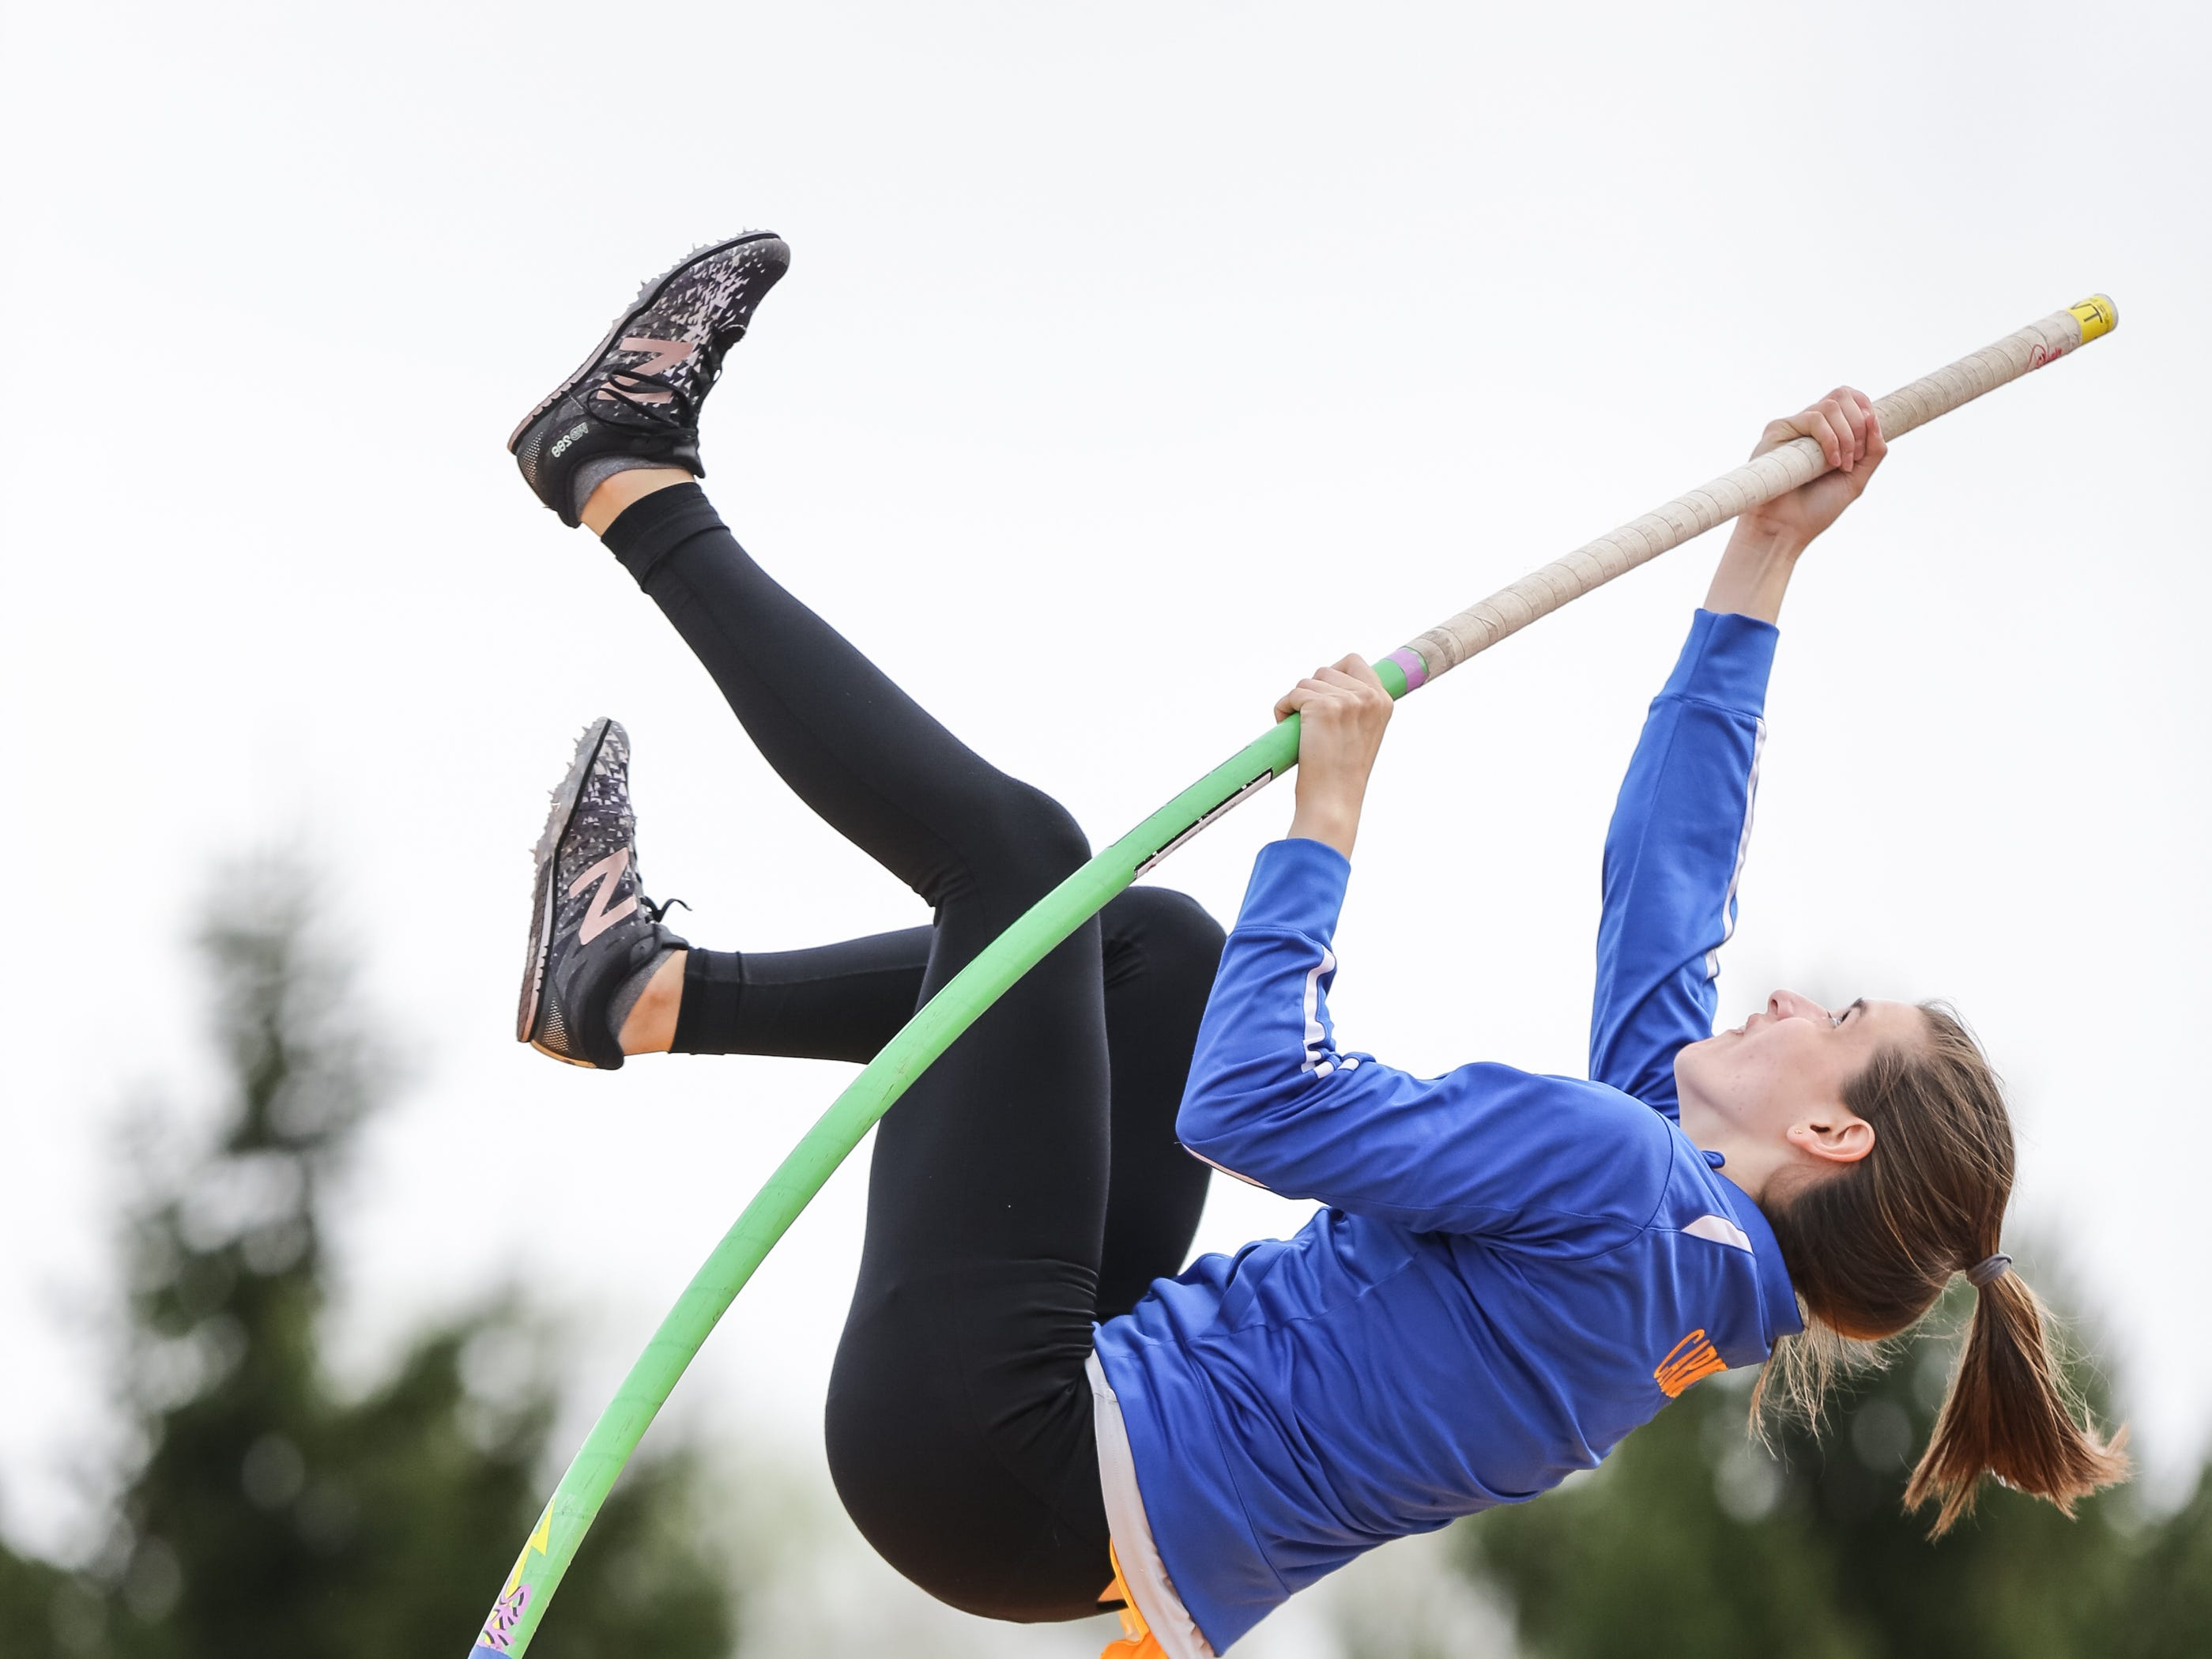 Carmel High School pole vaulter, Kara Deady takes a warm up vault before a track meet at C.H.S. in Ind. on Friday, May 4, 2018. Mark Deady competed in the 1500 meter race during the 1988 Olympic Games in Soul South Korea while Kara's mother, Dawn Gelon earned the sixth-best Heptathlon score in Indiana University history.